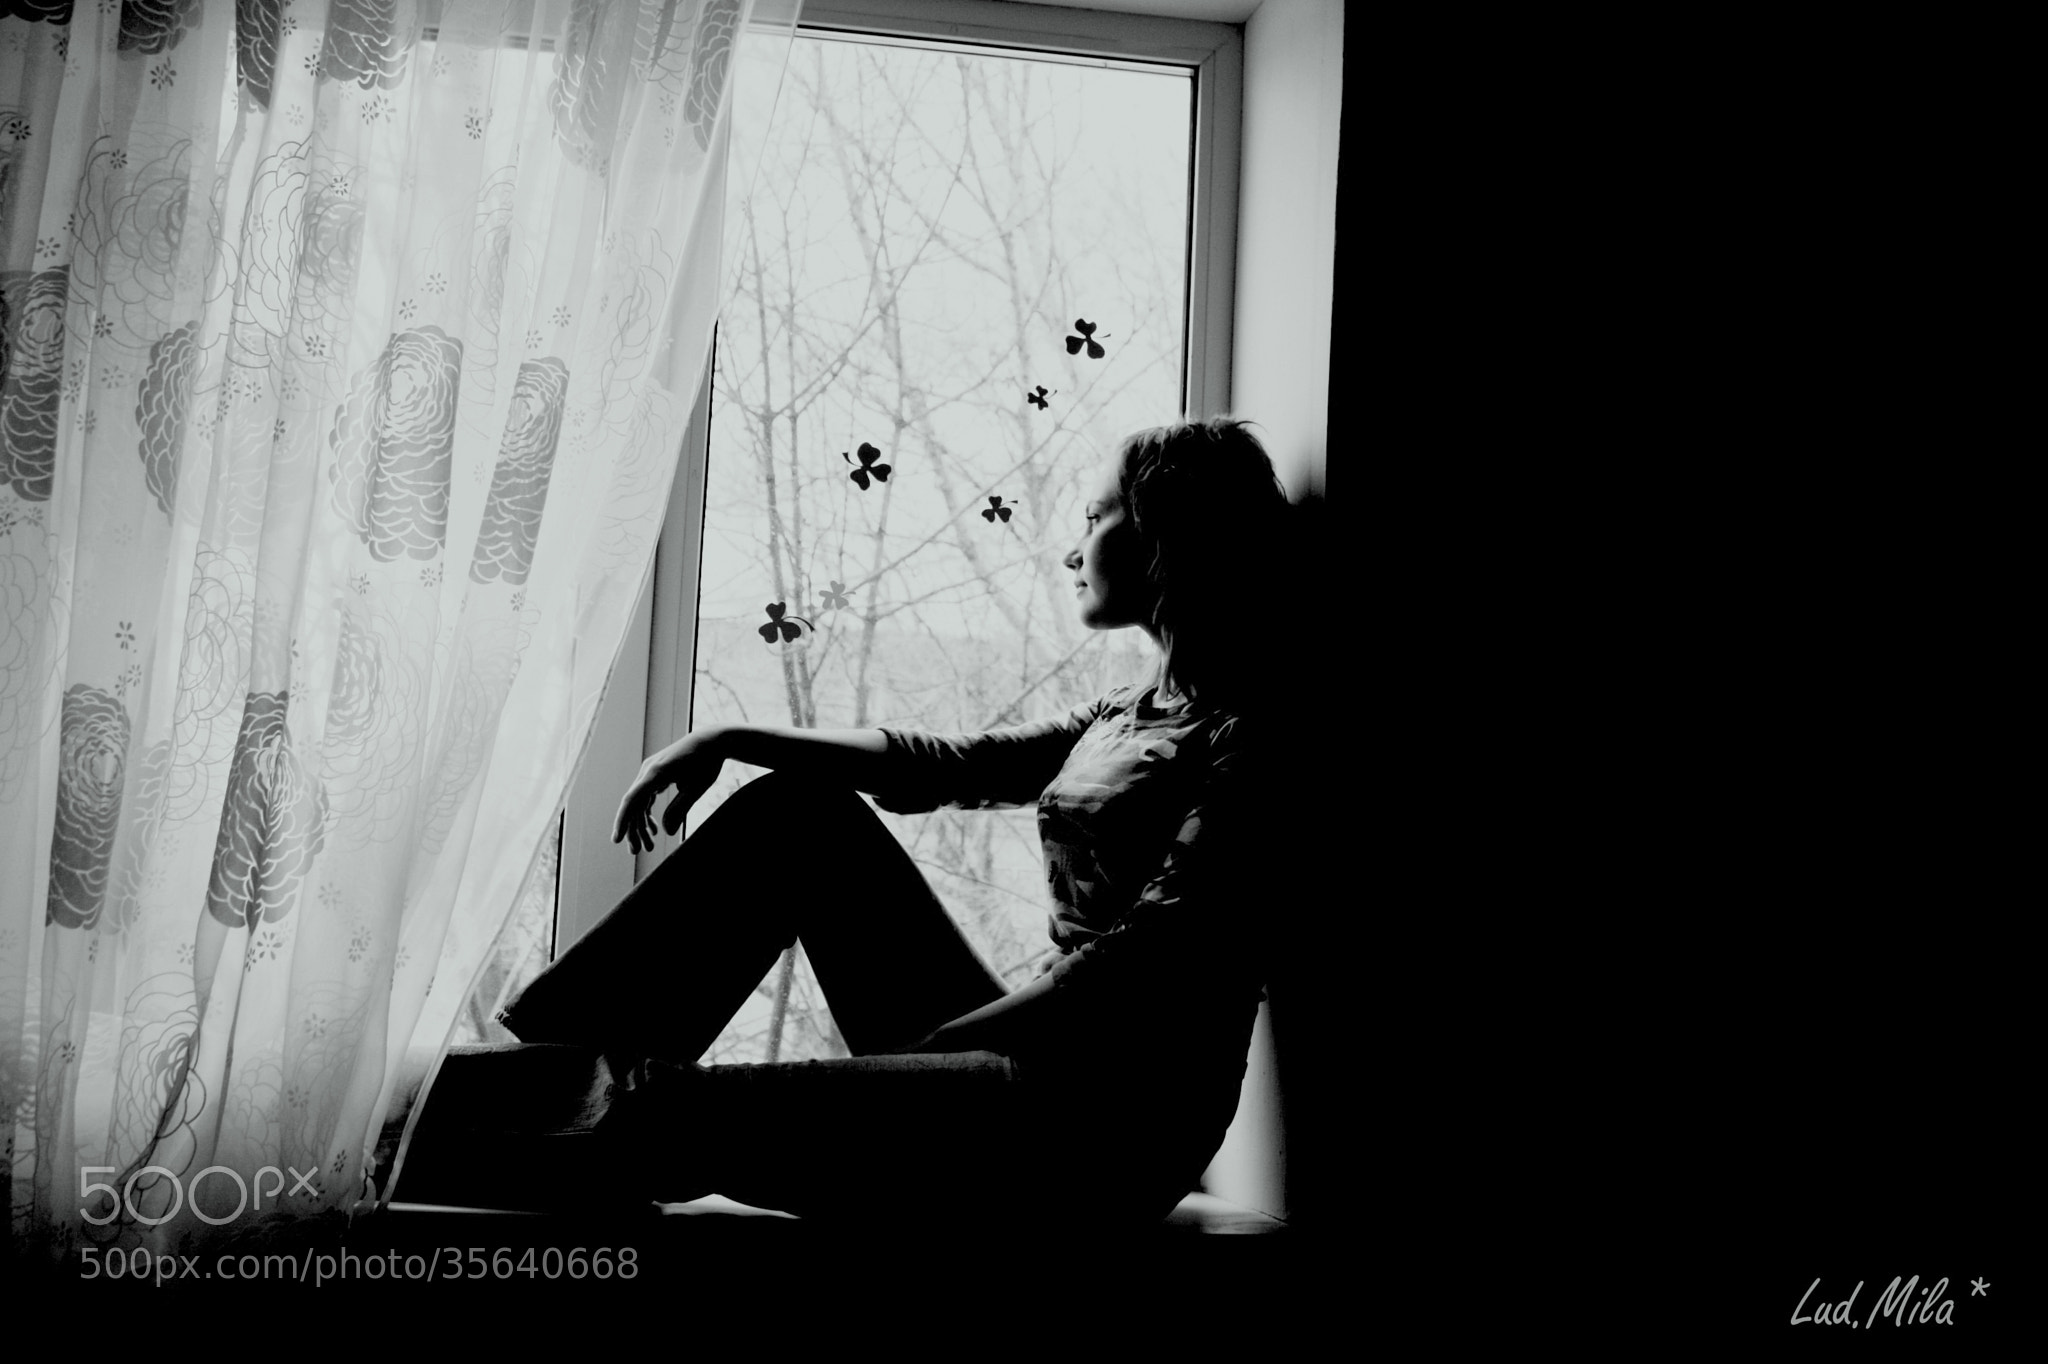 Photograph expectation by Mila-la * on 500px